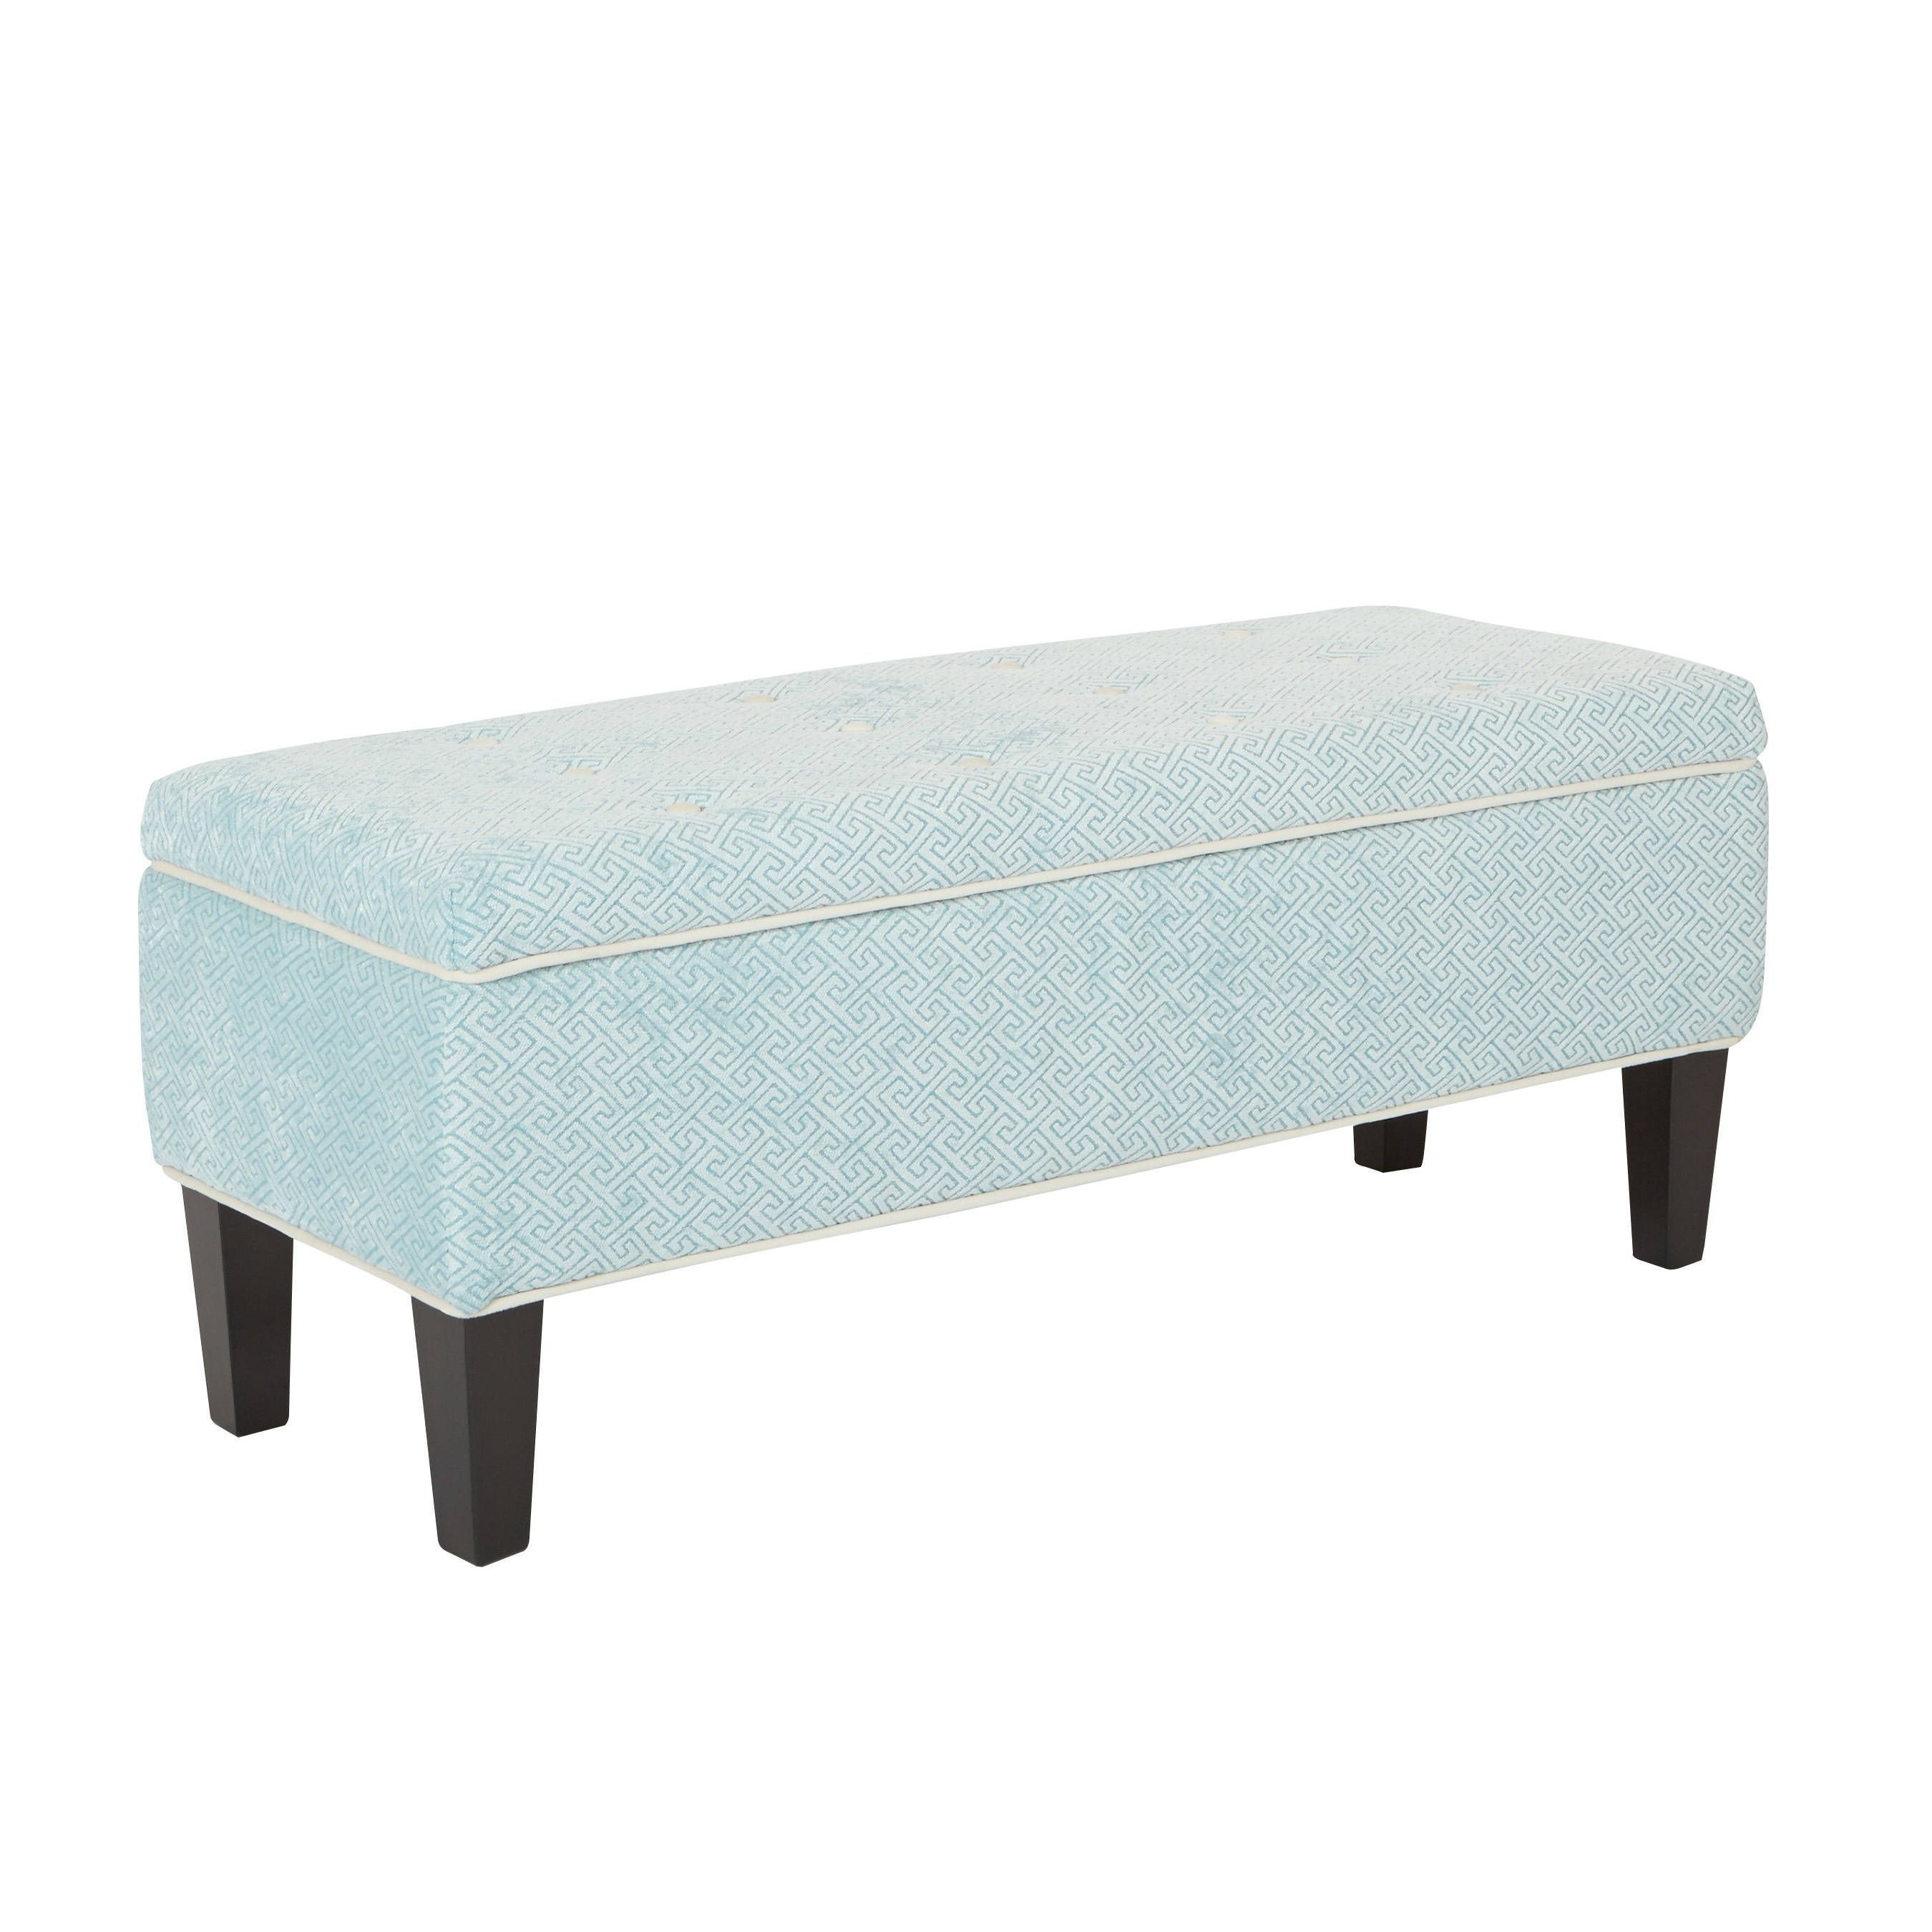 Fabric Bench for Bedroom New Osp Home Furnishings Cambridge Storage Tufted Fabric Bench